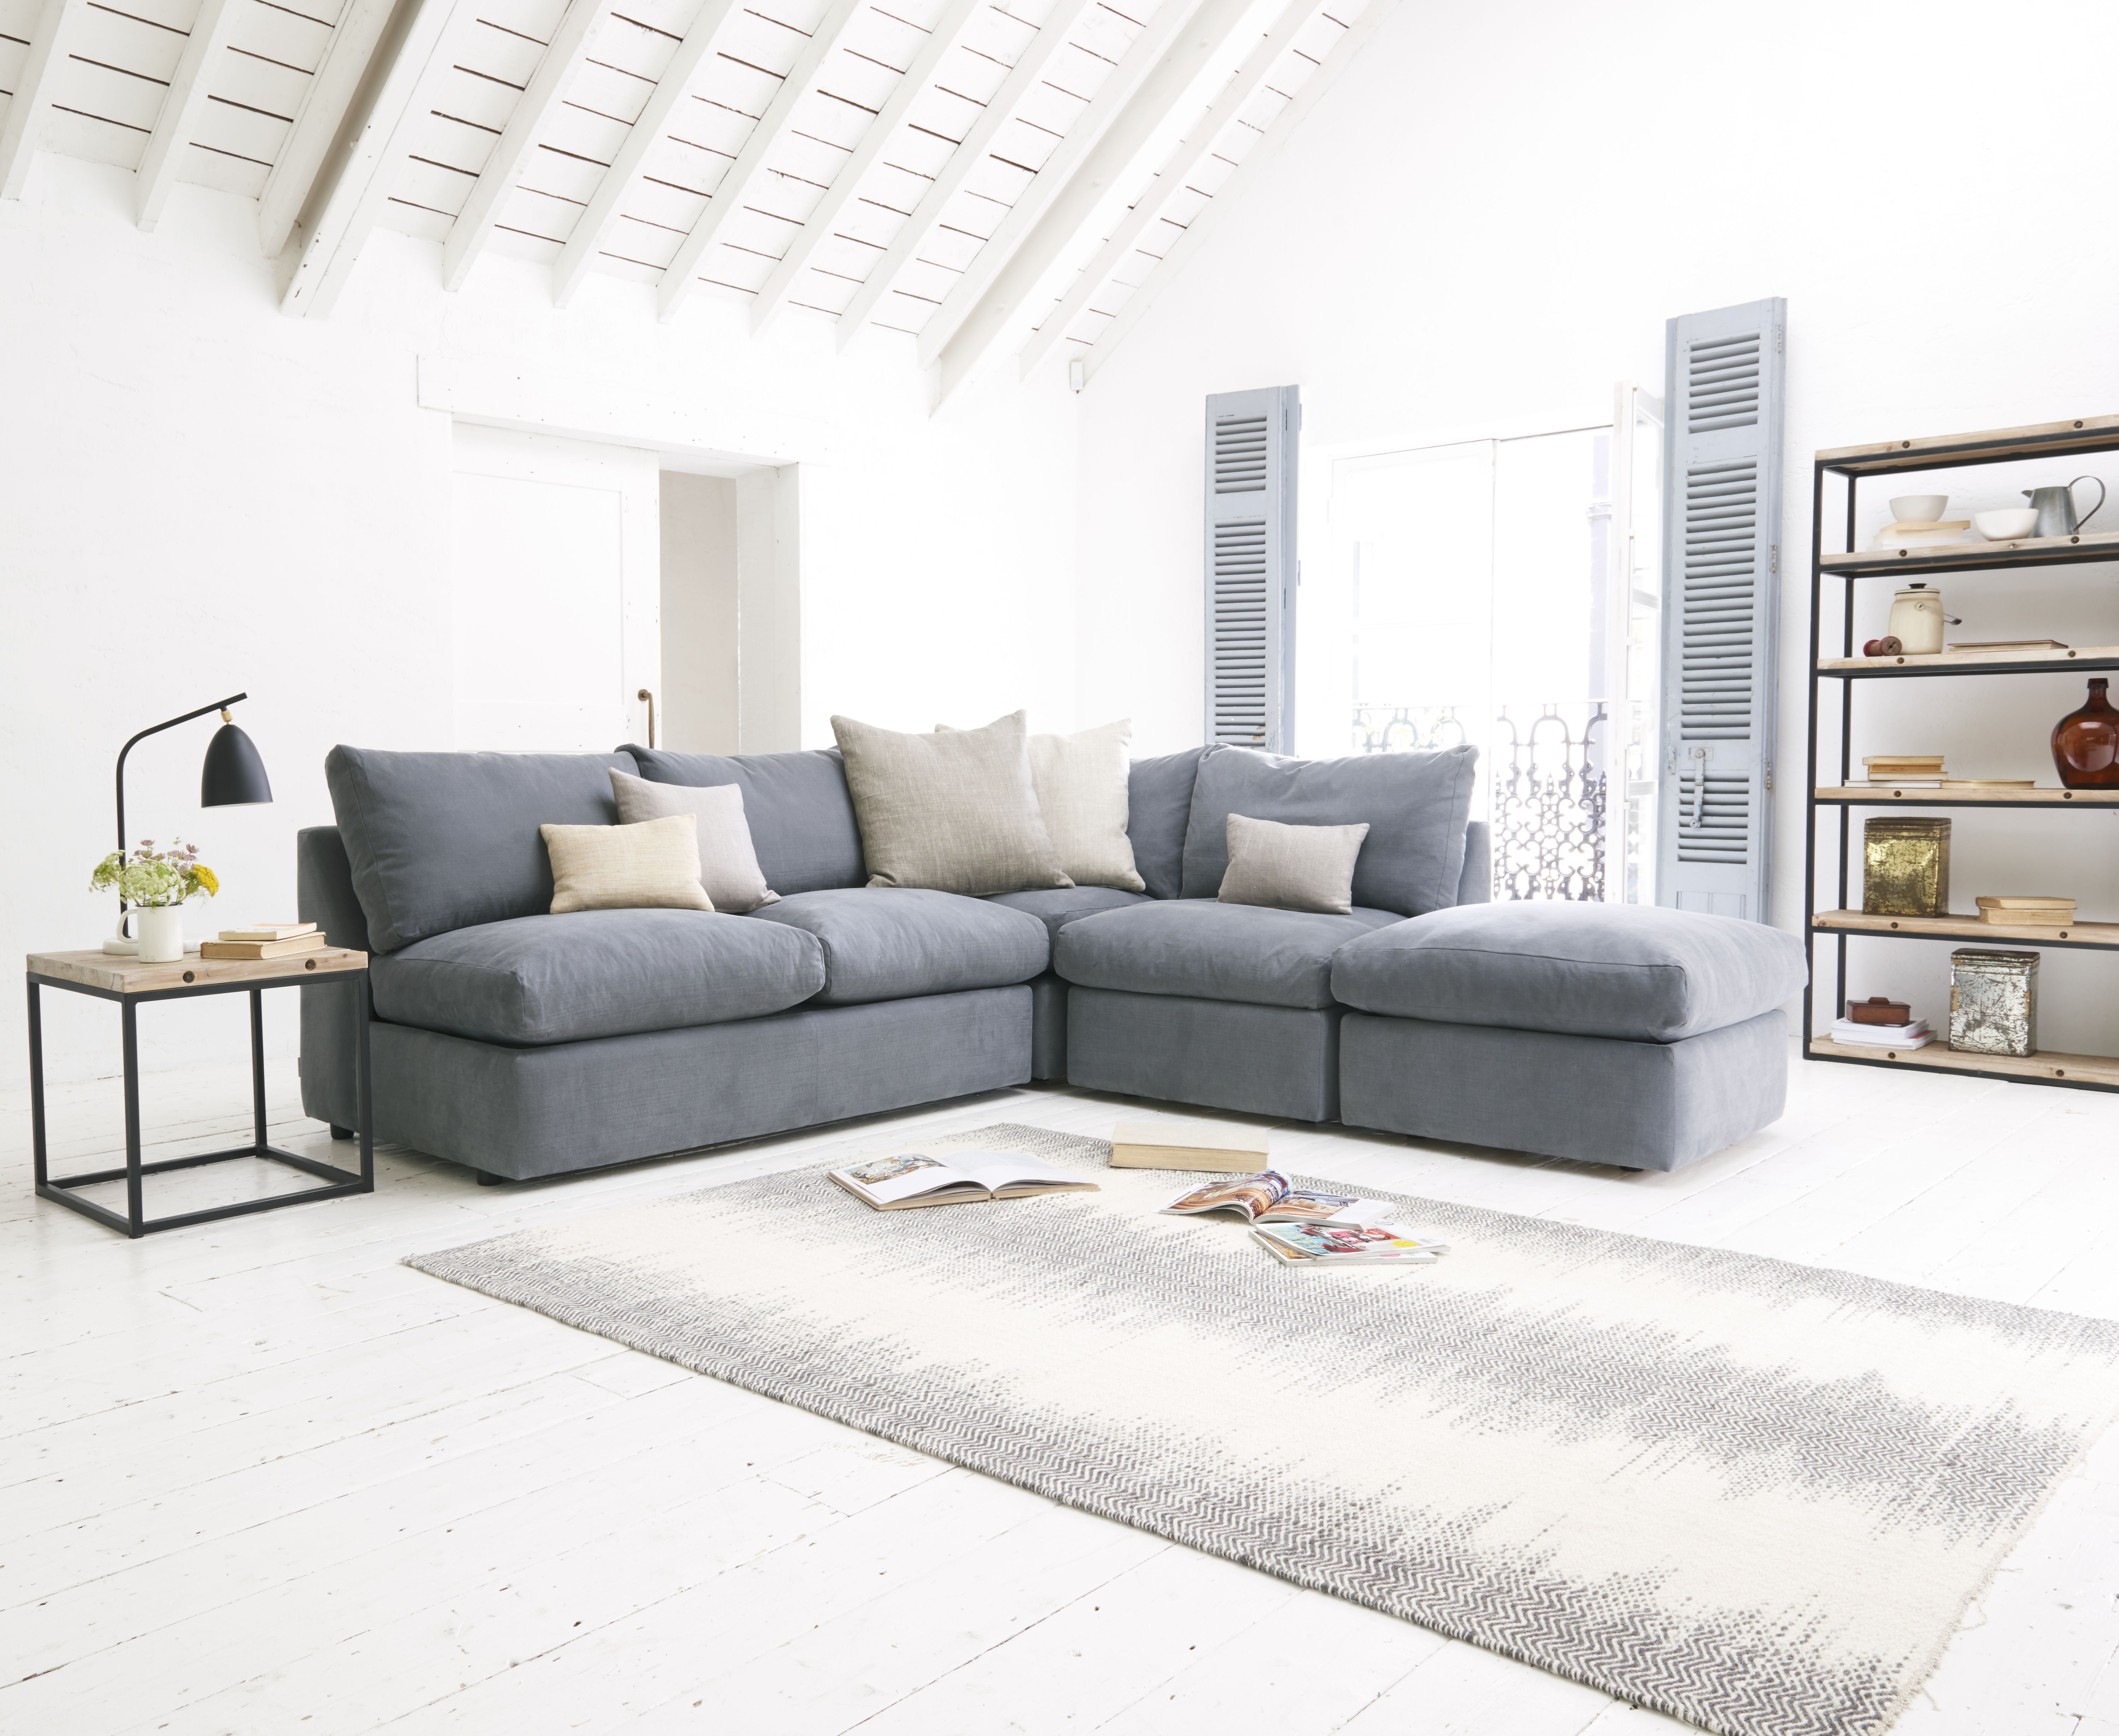 Awesome Modular Sofa Bed Good 77 For Your Modern Ideas With